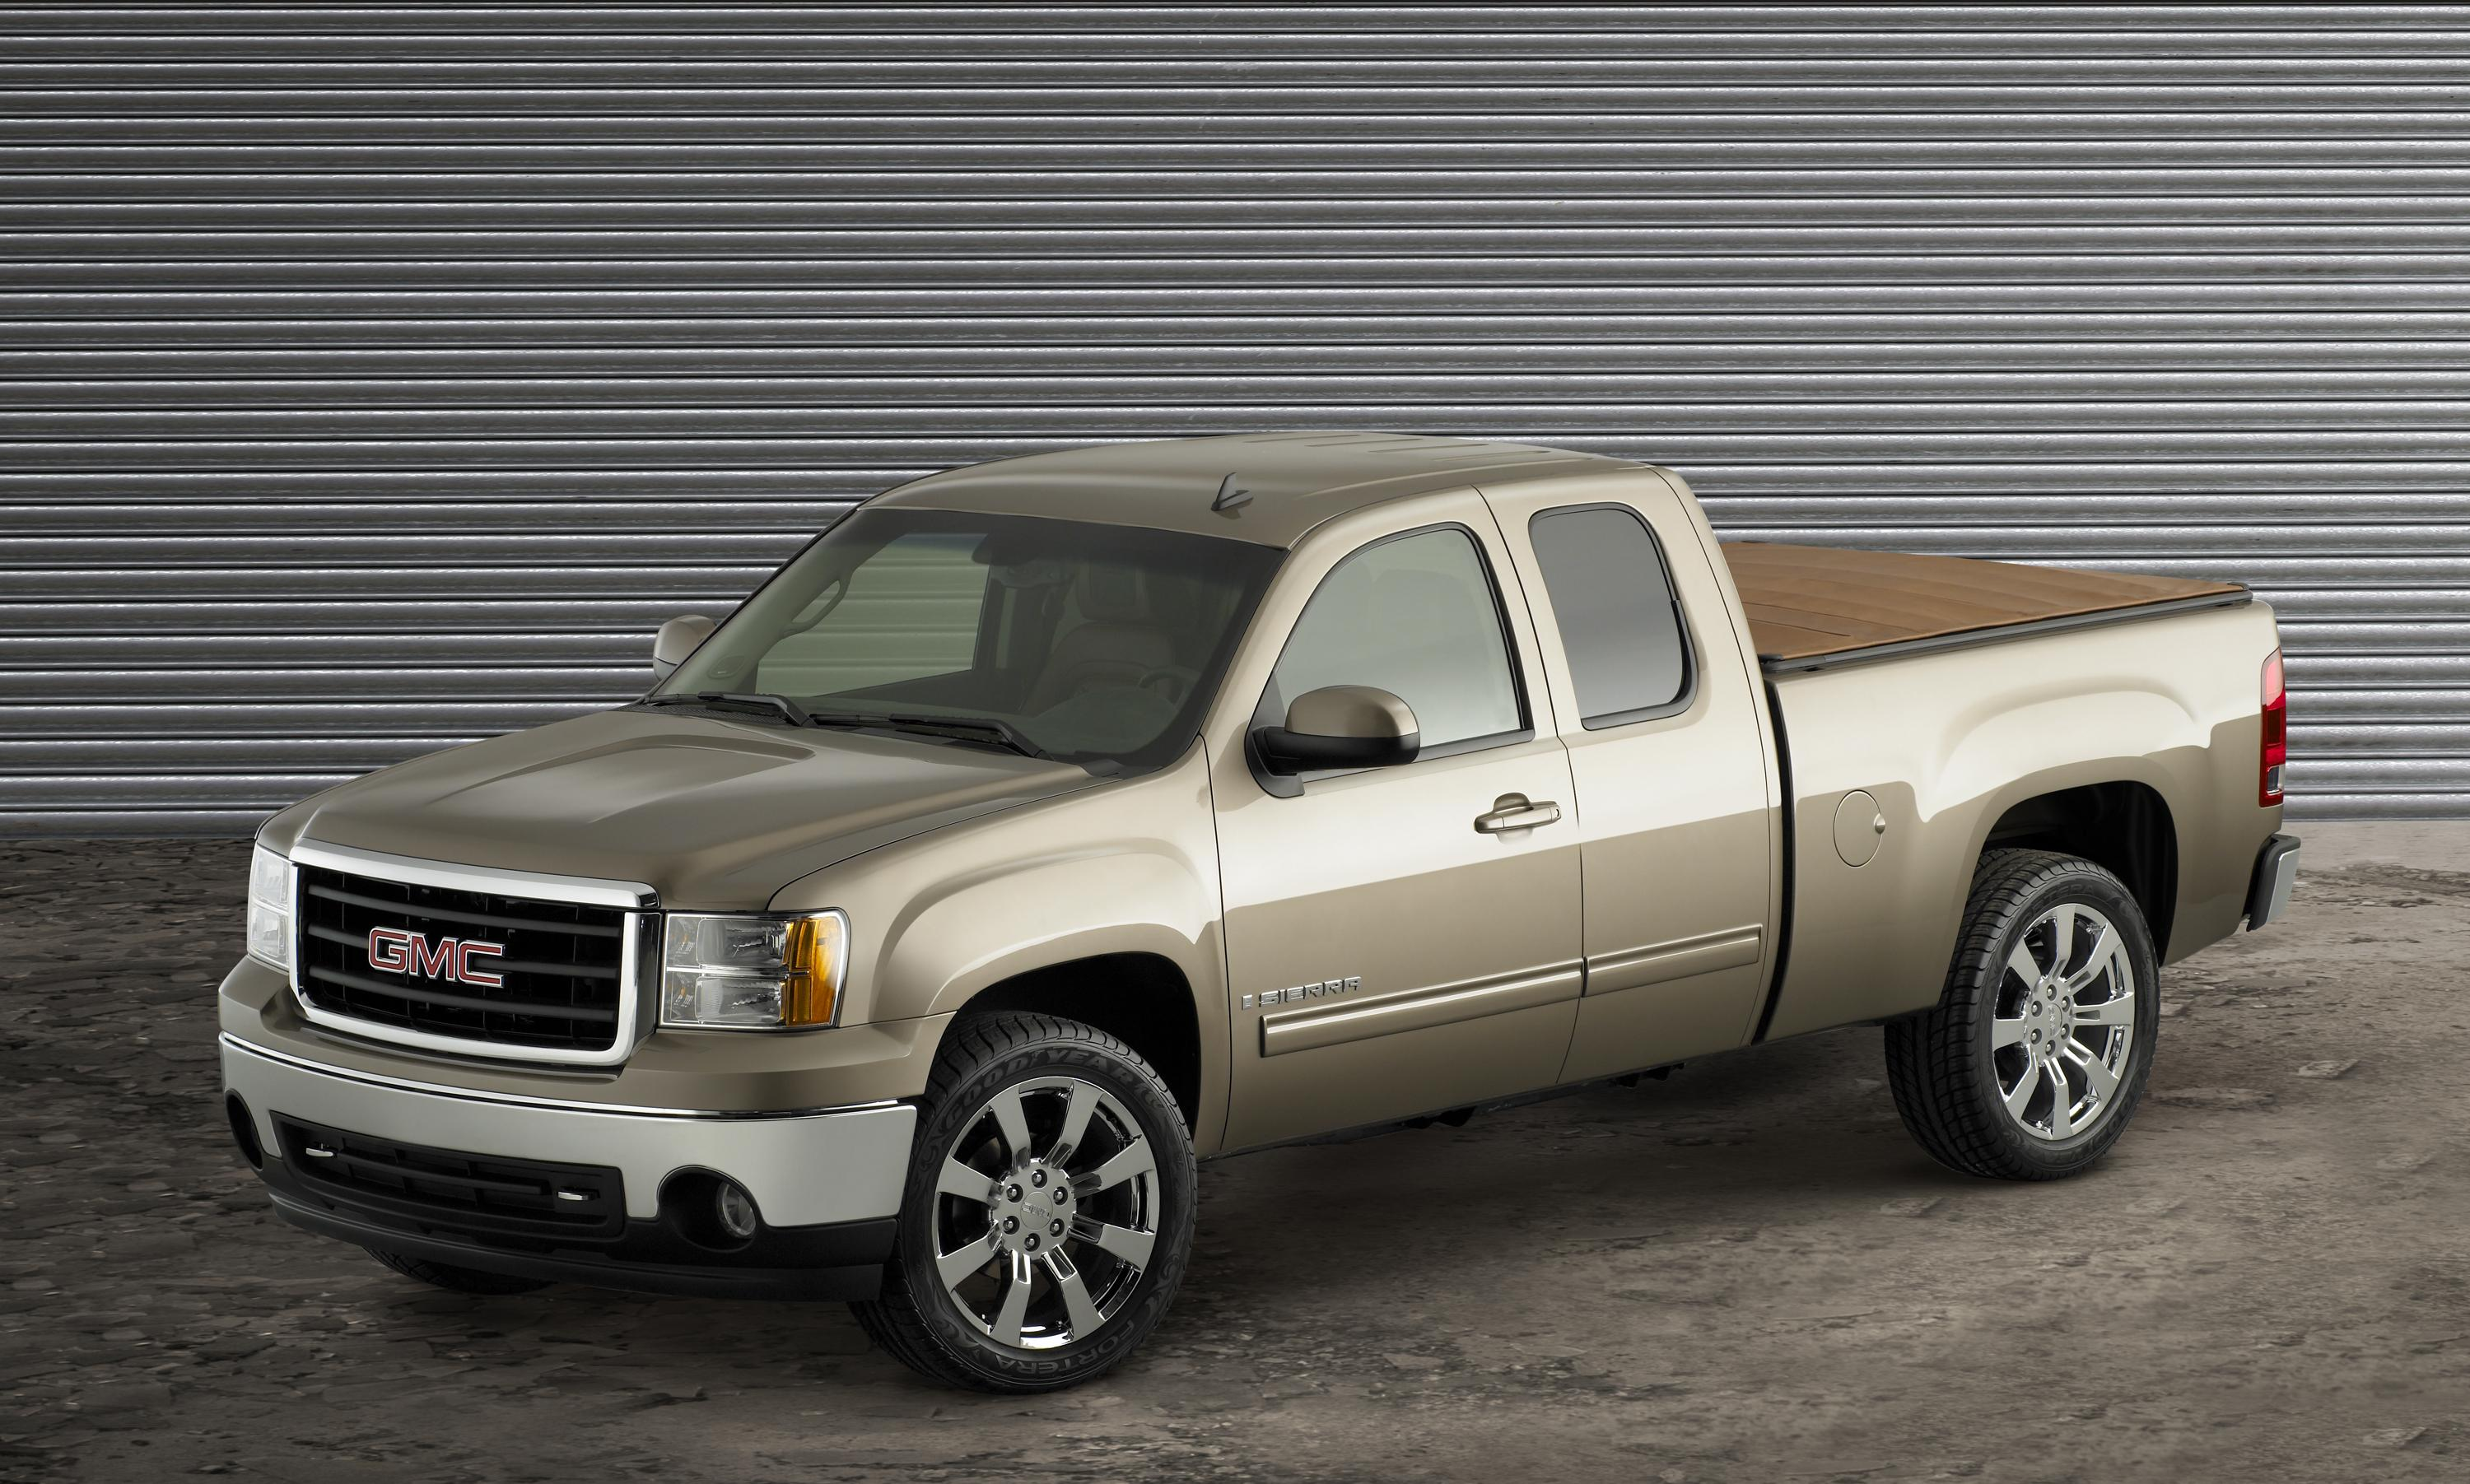 2007 gmc sierra 1500 texas edition review gallery top speed. Black Bedroom Furniture Sets. Home Design Ideas